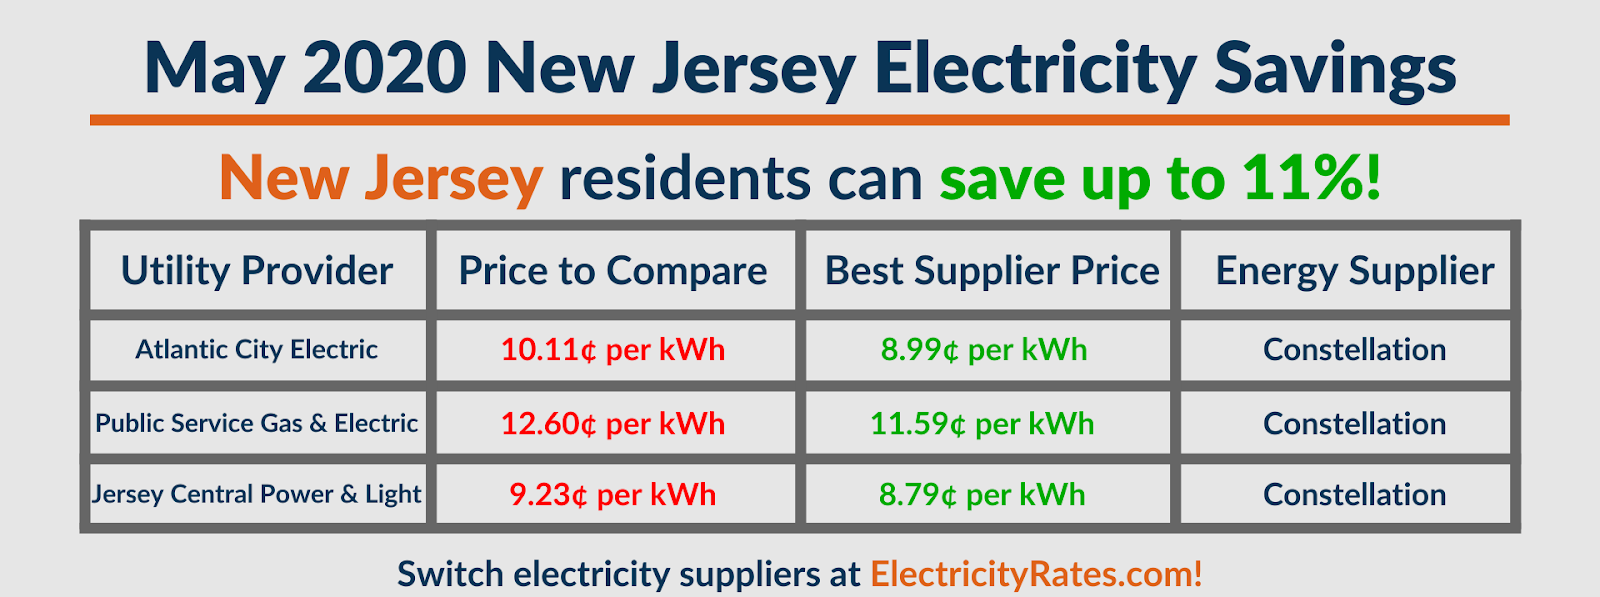 Graphic depicting May 2020 New Jersey savings by utility